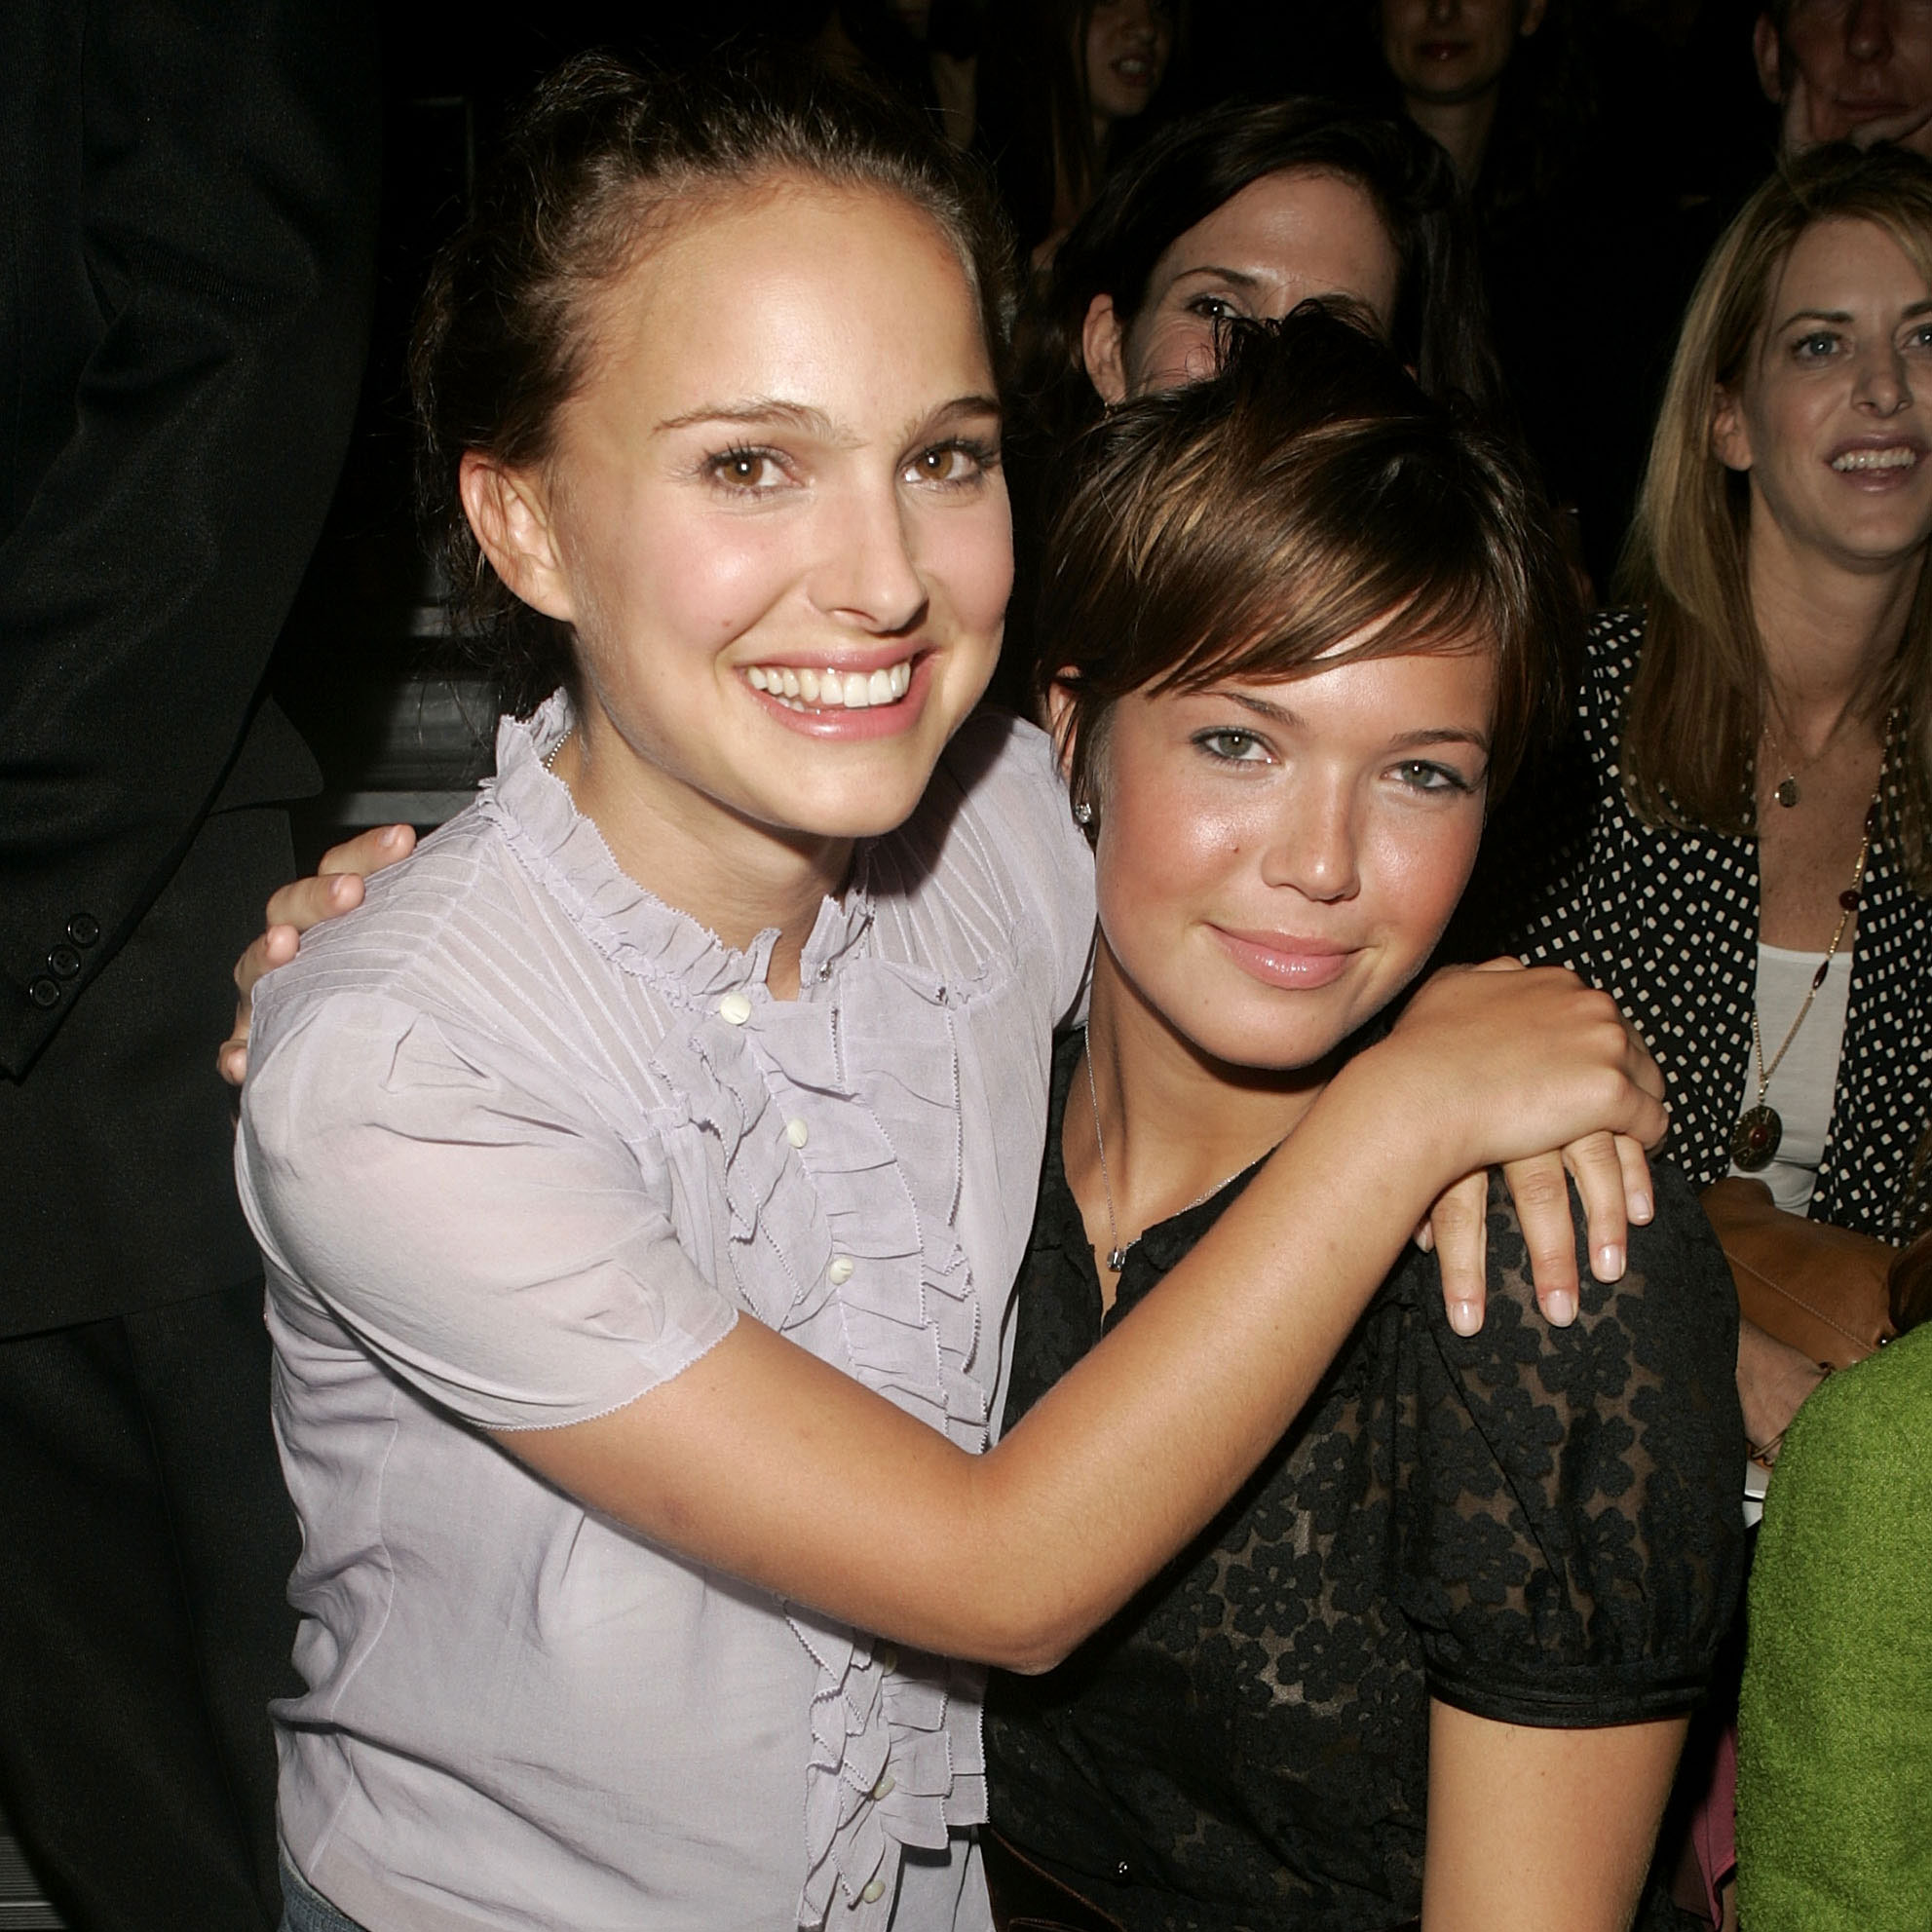 Natalie Portman and Mandy Moore were front and center at the Marc Jacobs show in September 2004.